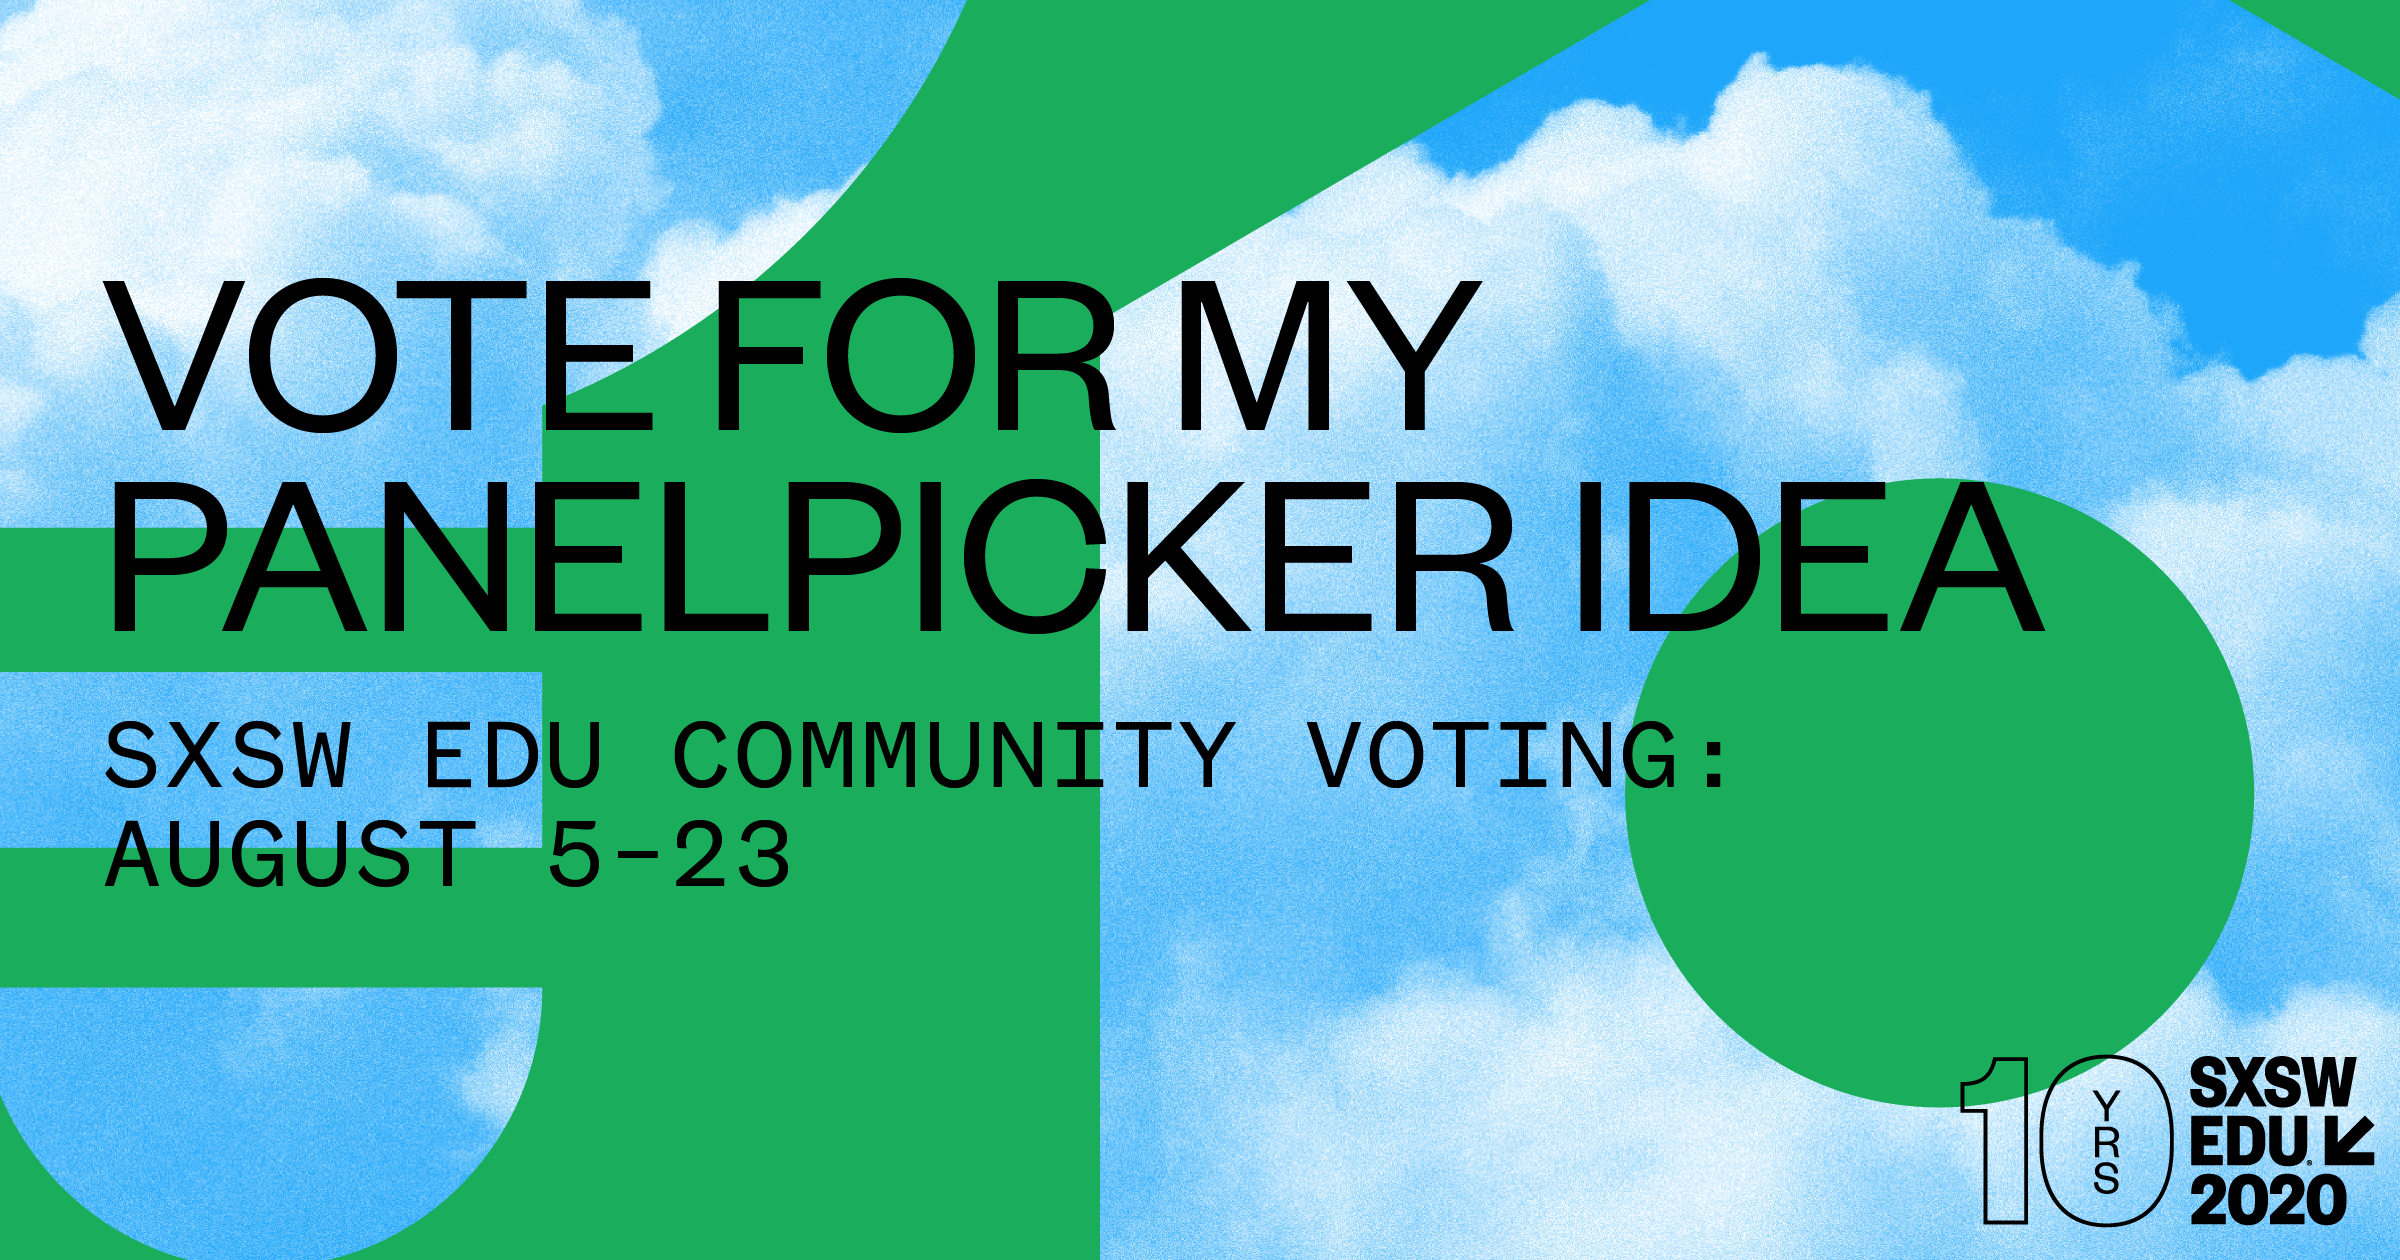 Vote for my PanelPicker idea, SXSW EDU 2020 social media image.